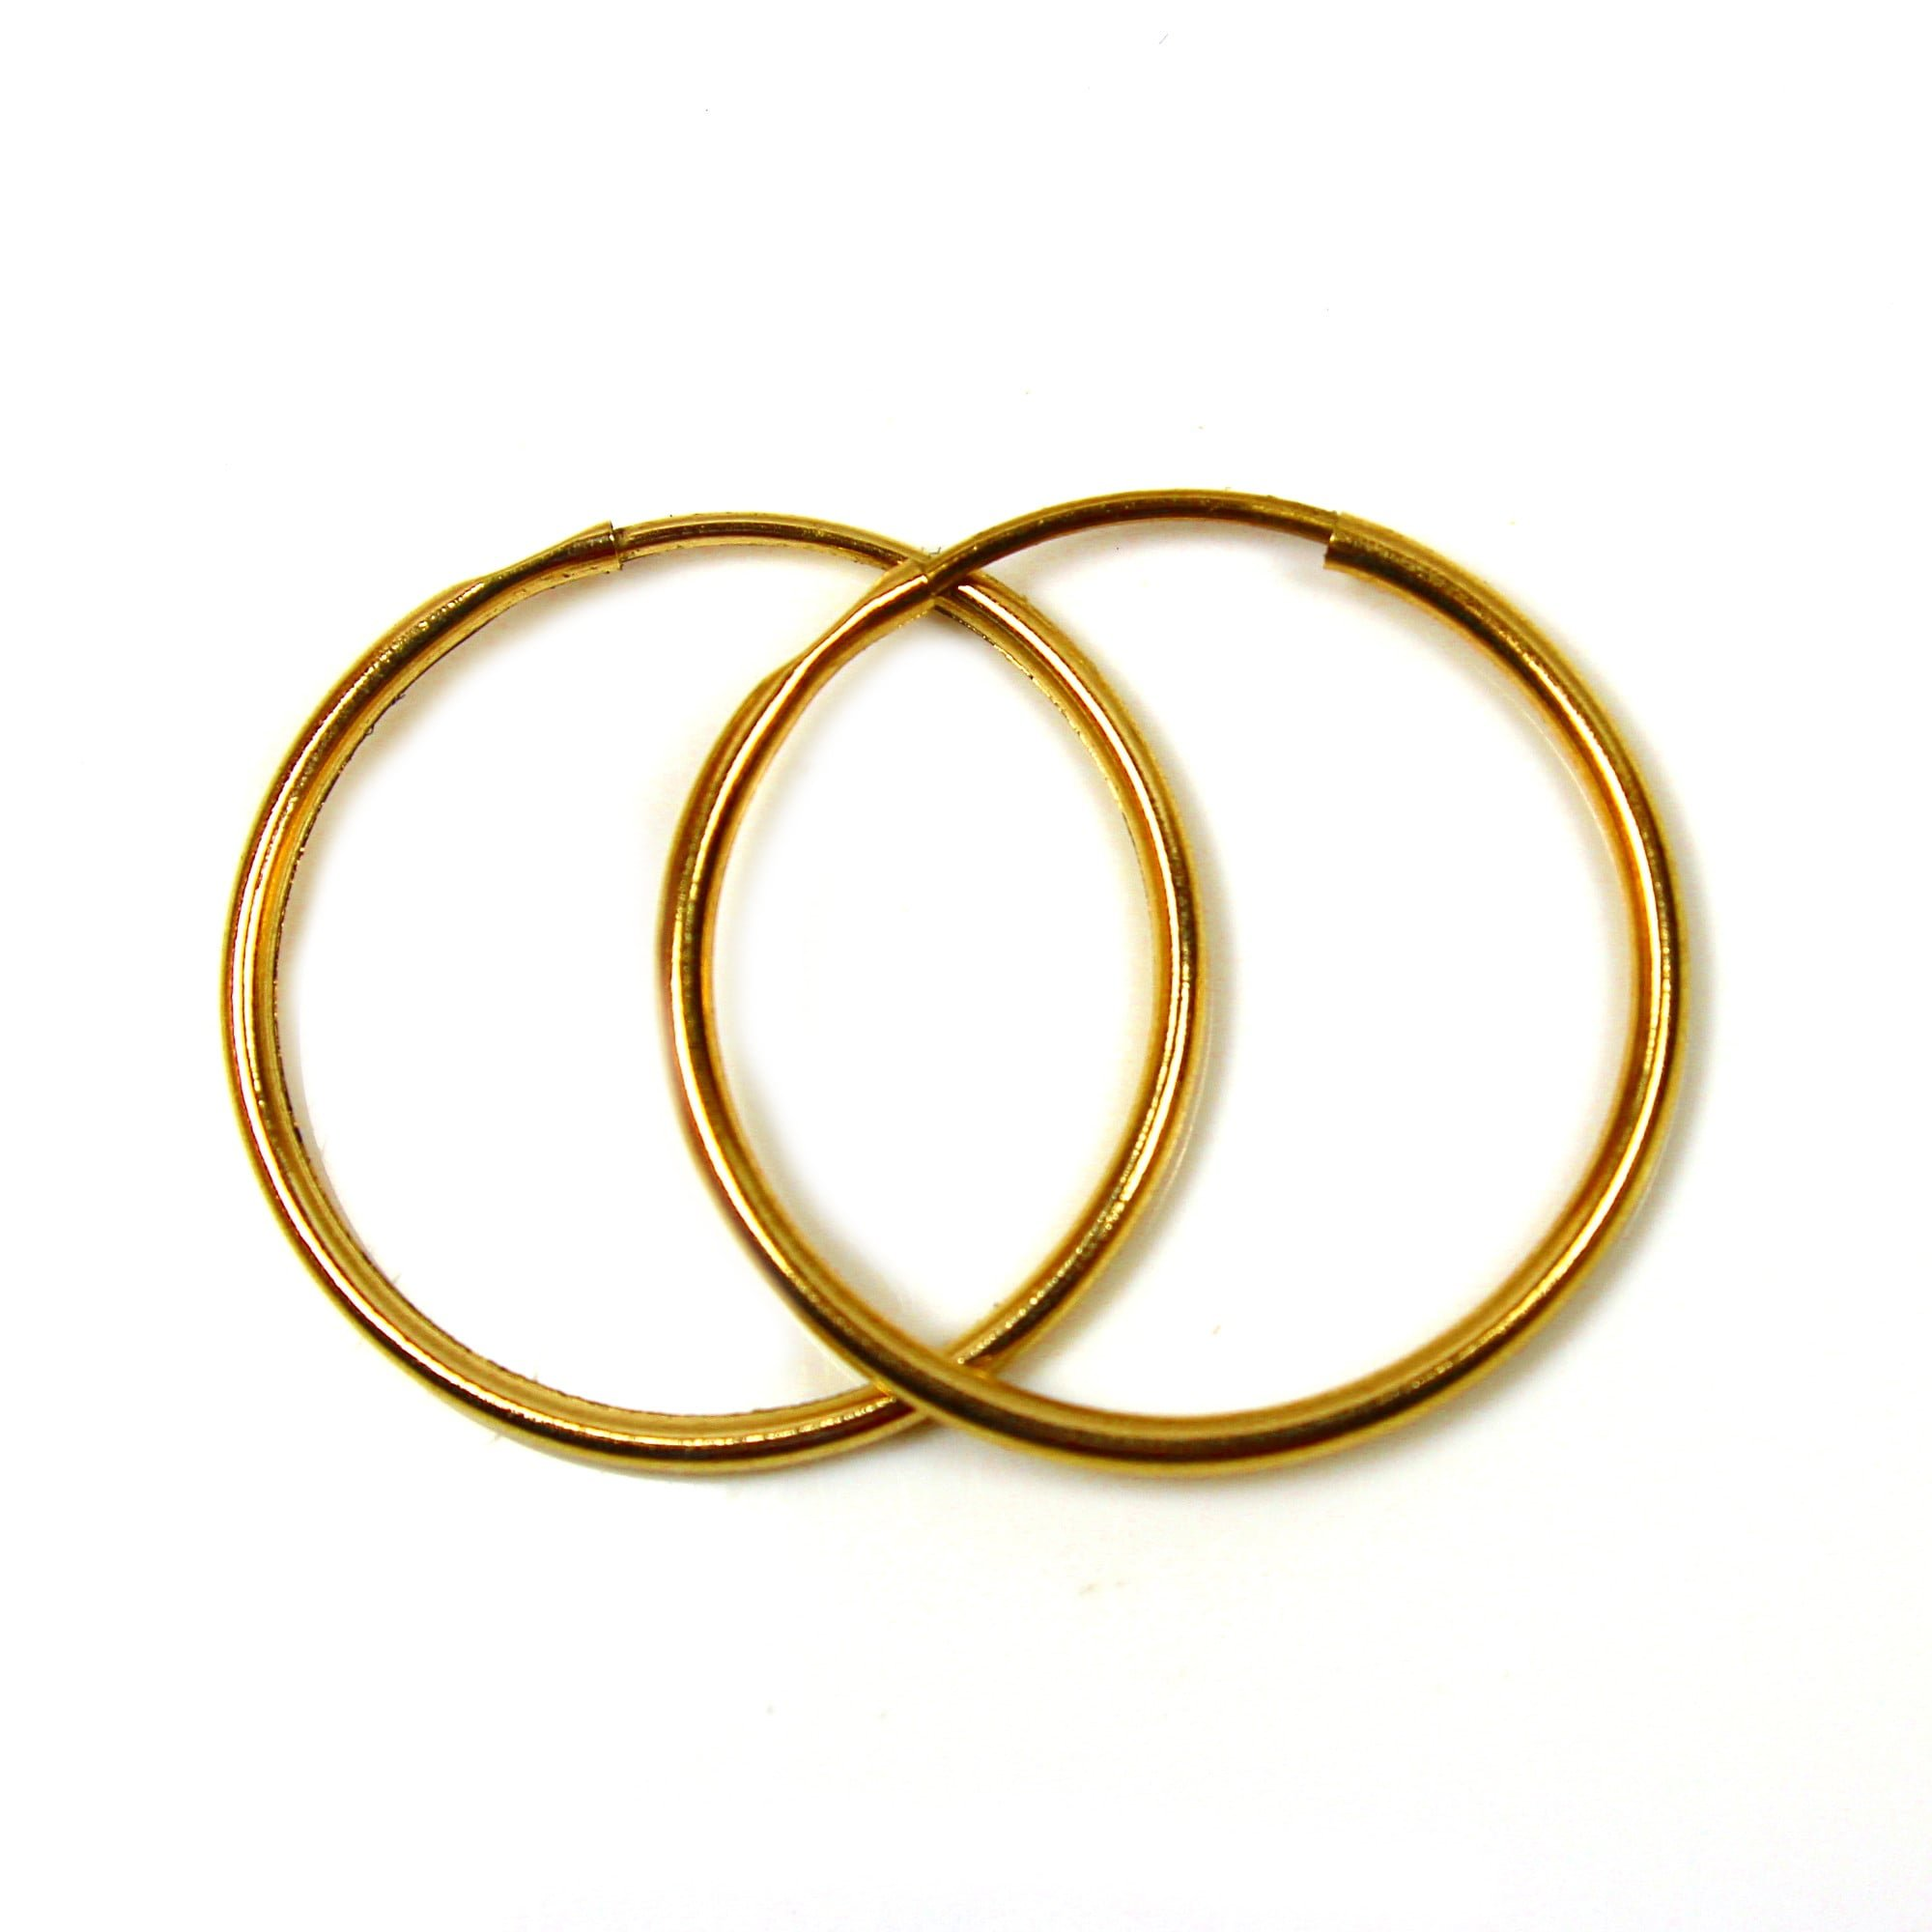 22mm 9ct gold hoop earrings